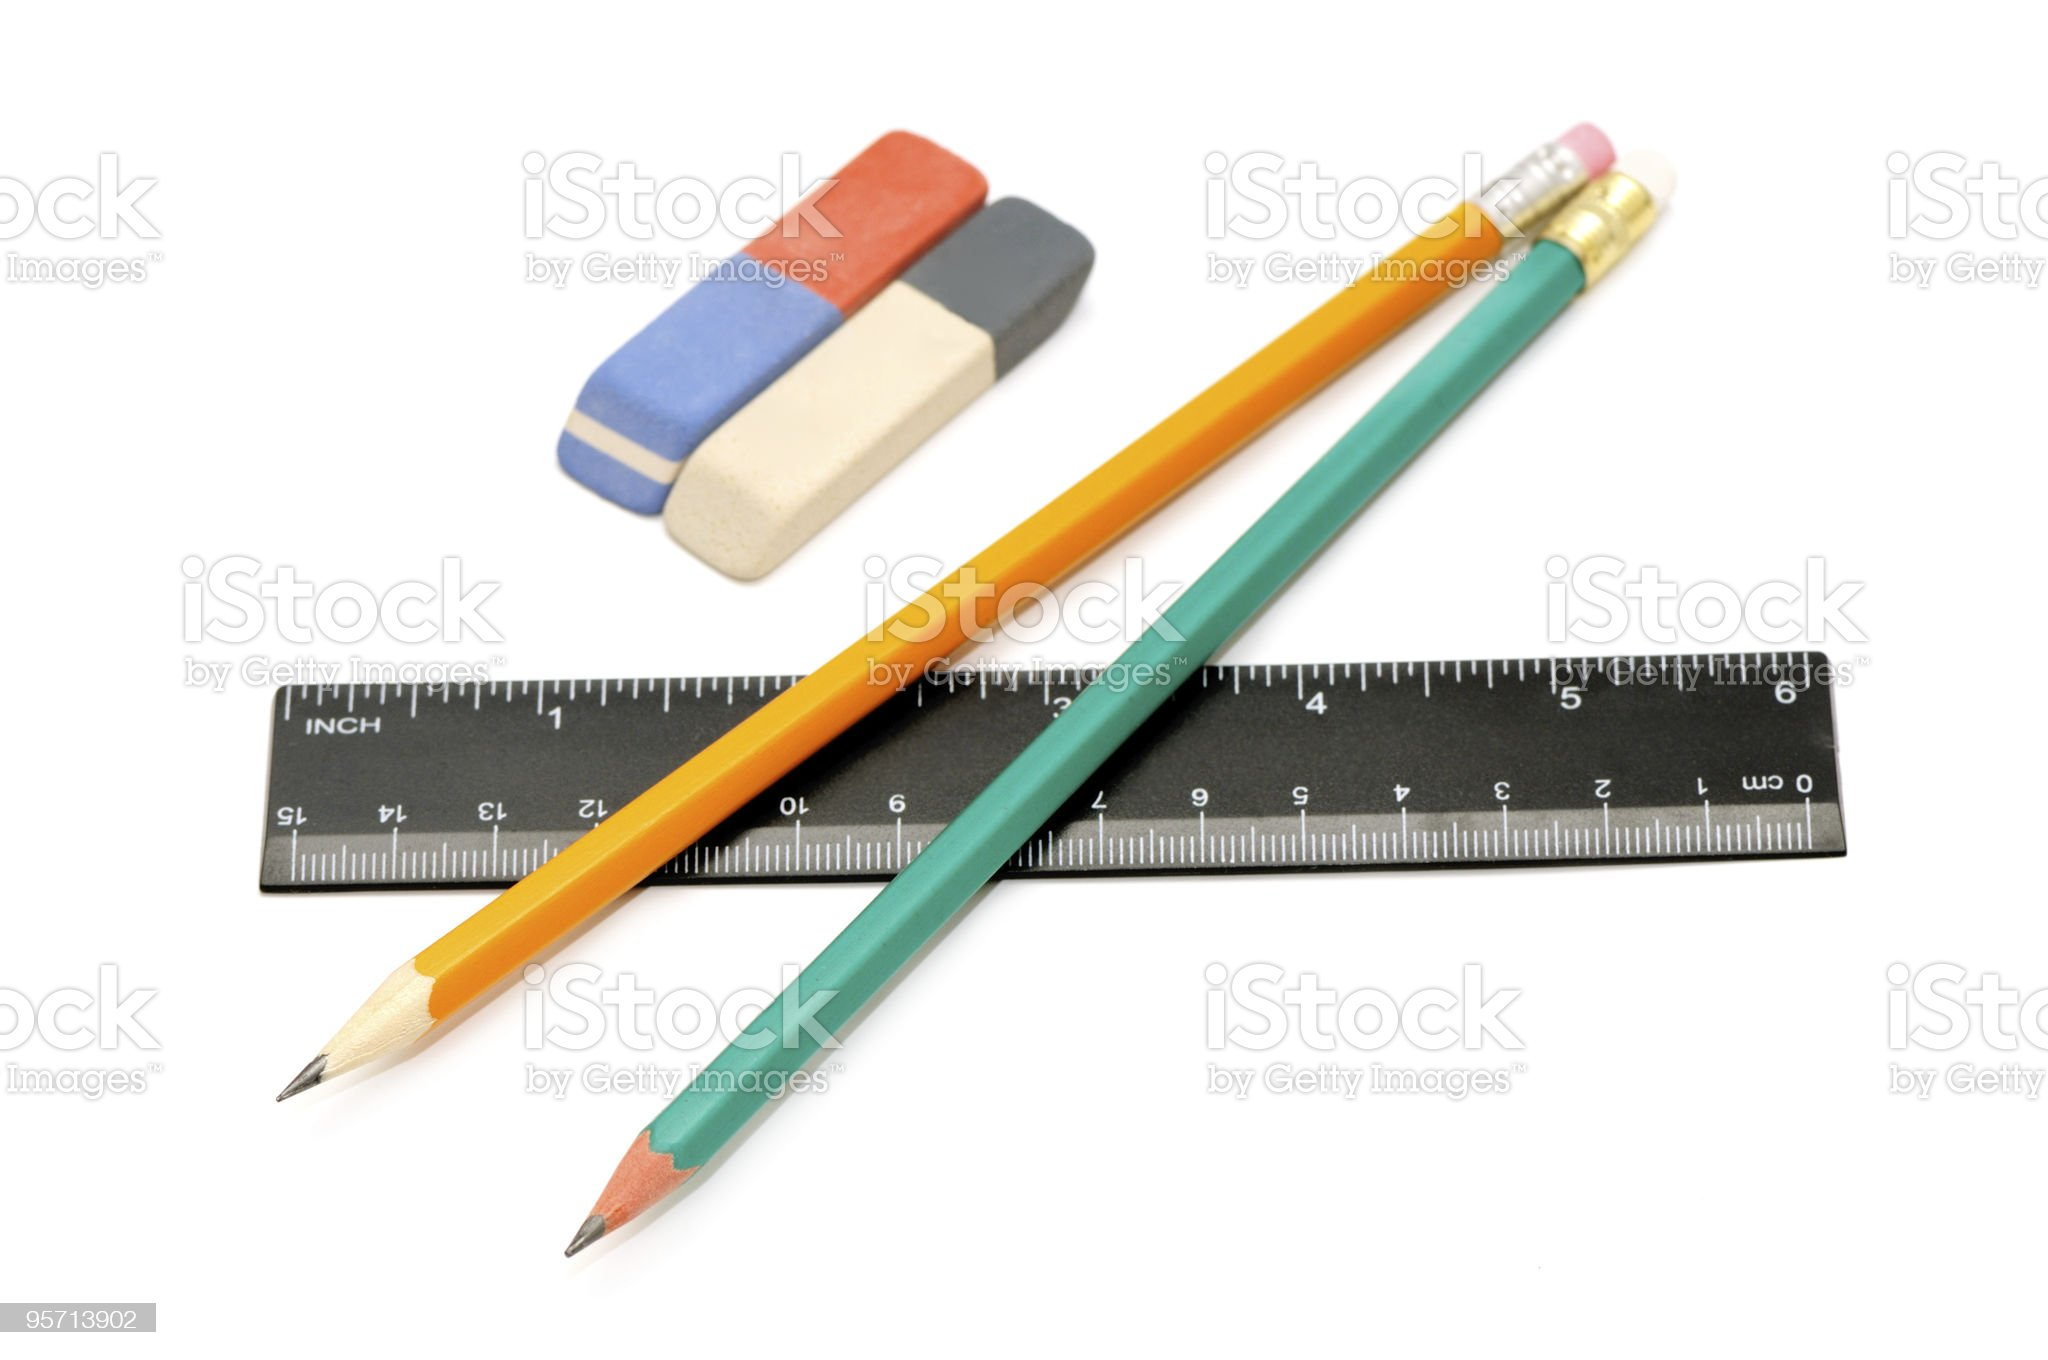 Pencils, eraser and ruler royalty-free stock photo